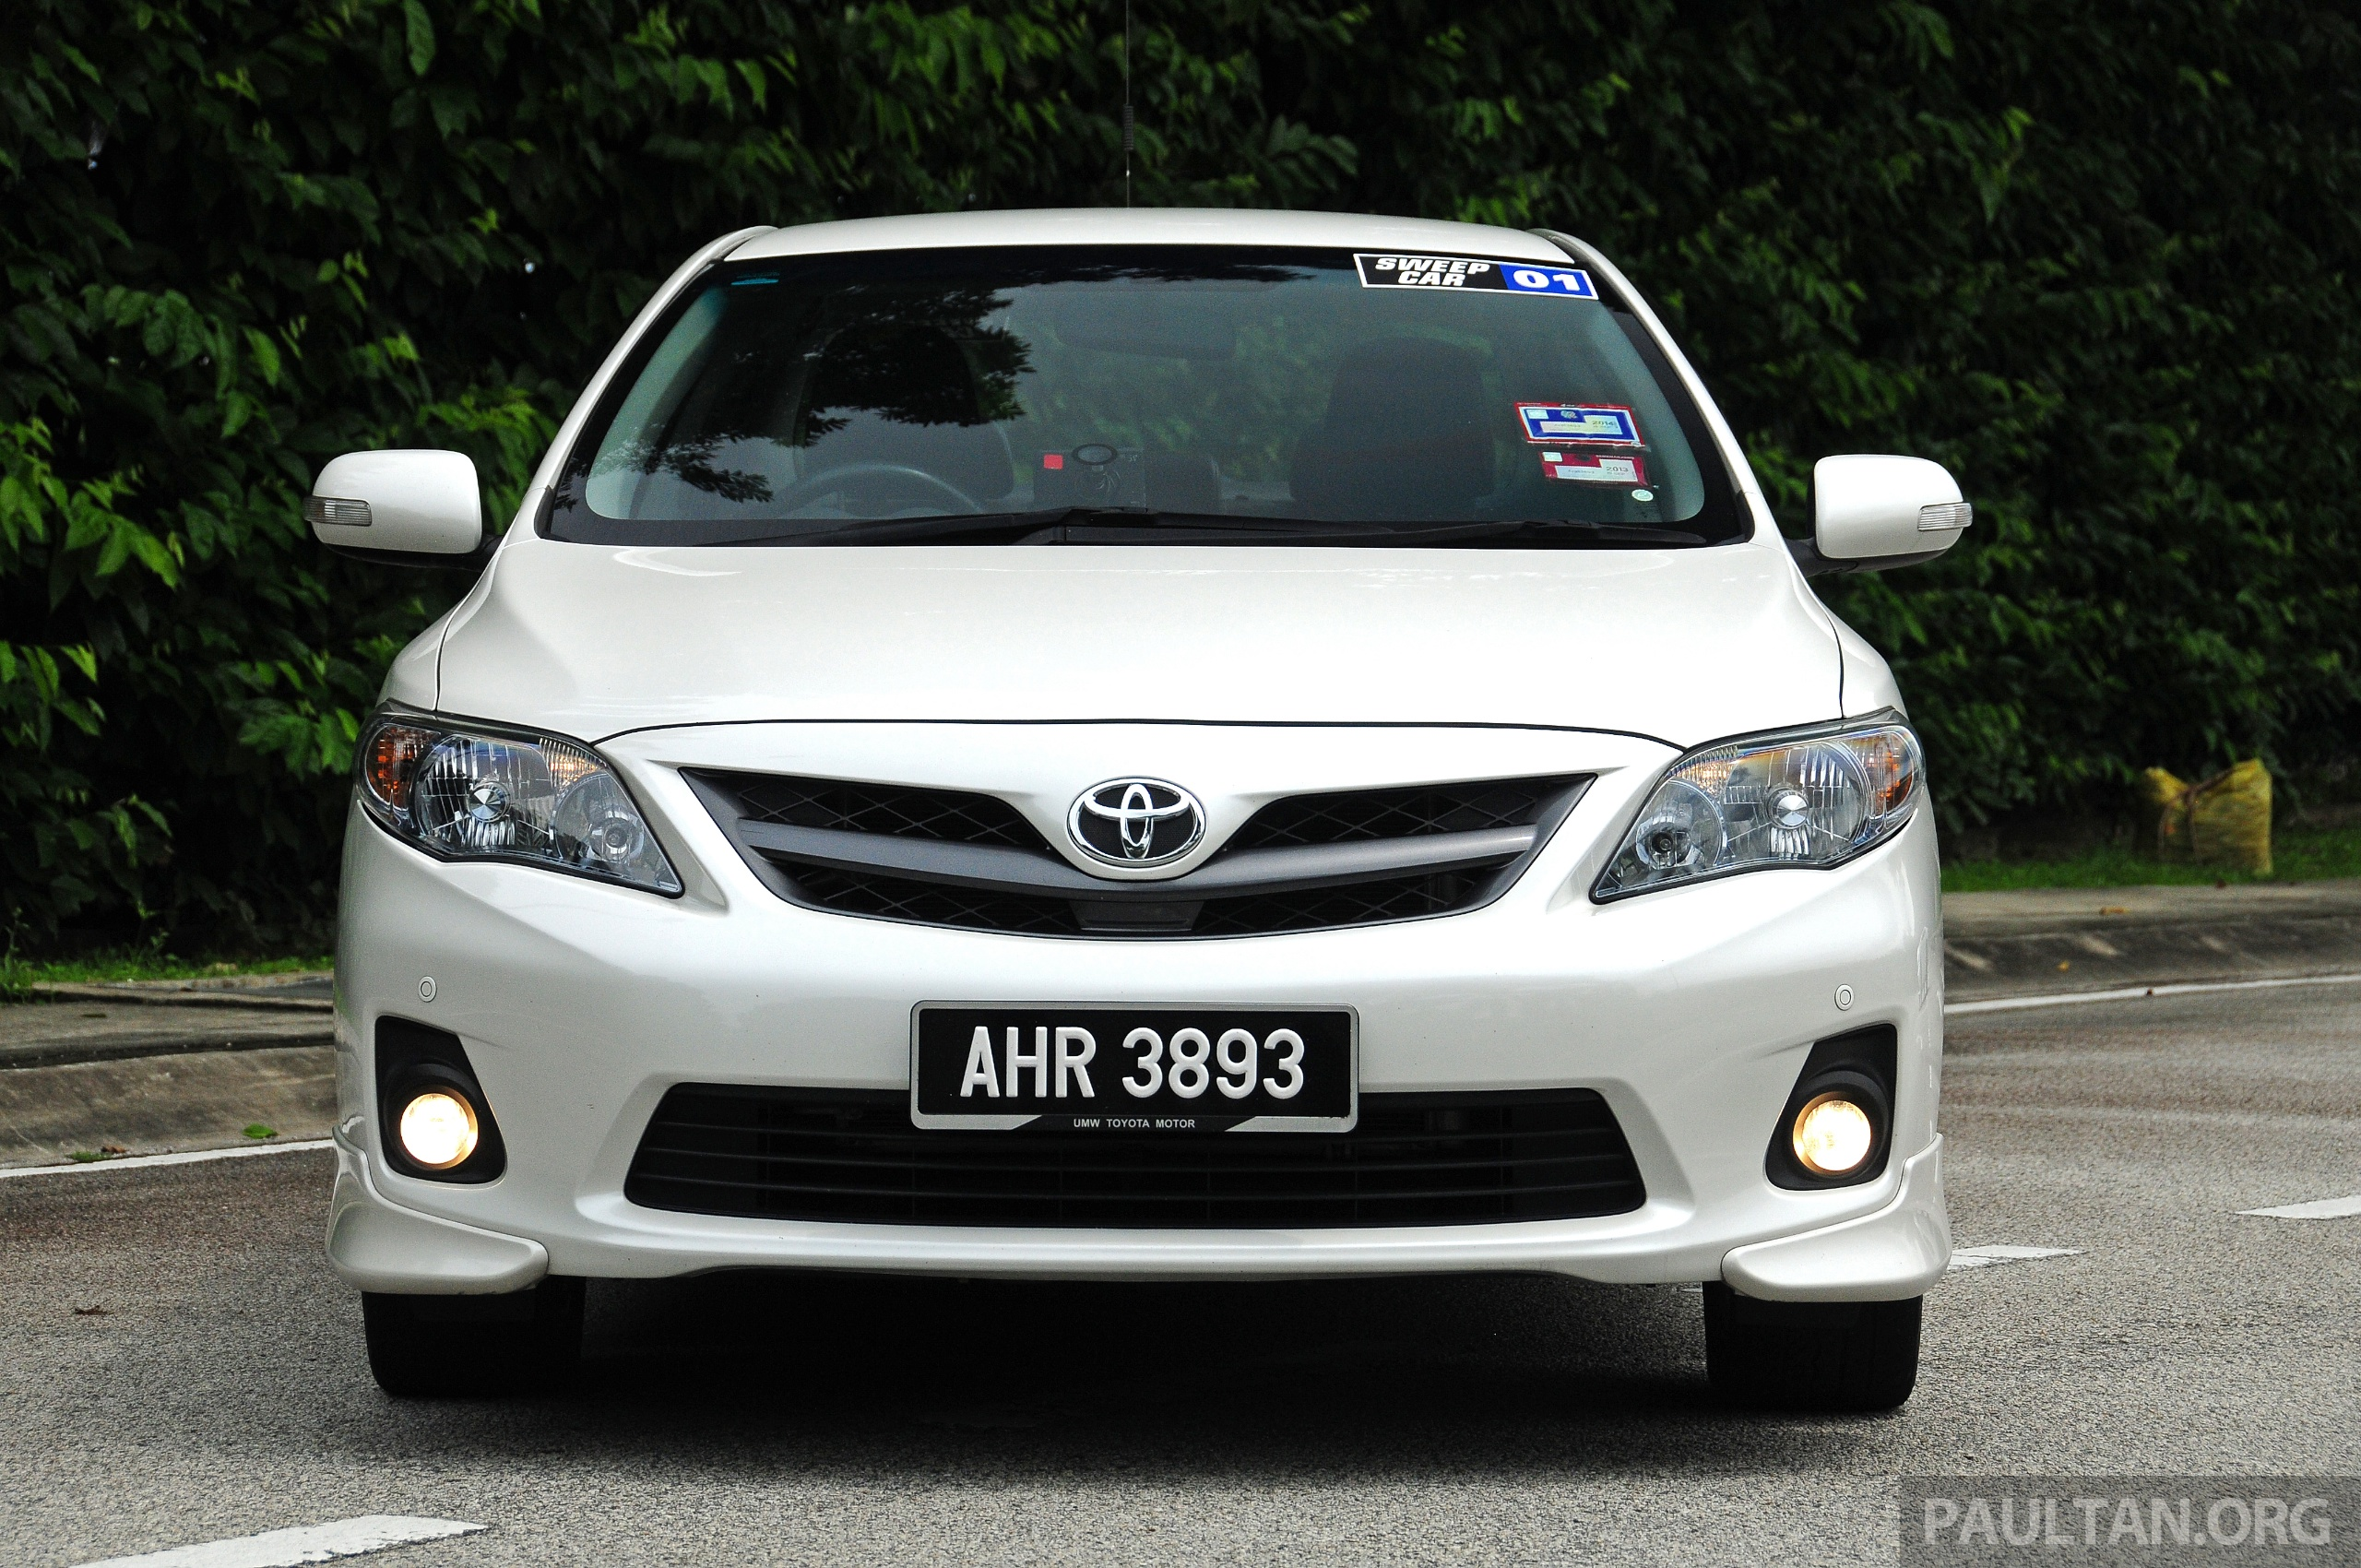 brand new toyota altis price all camry hybrid 2018 gallery old and corolla compared